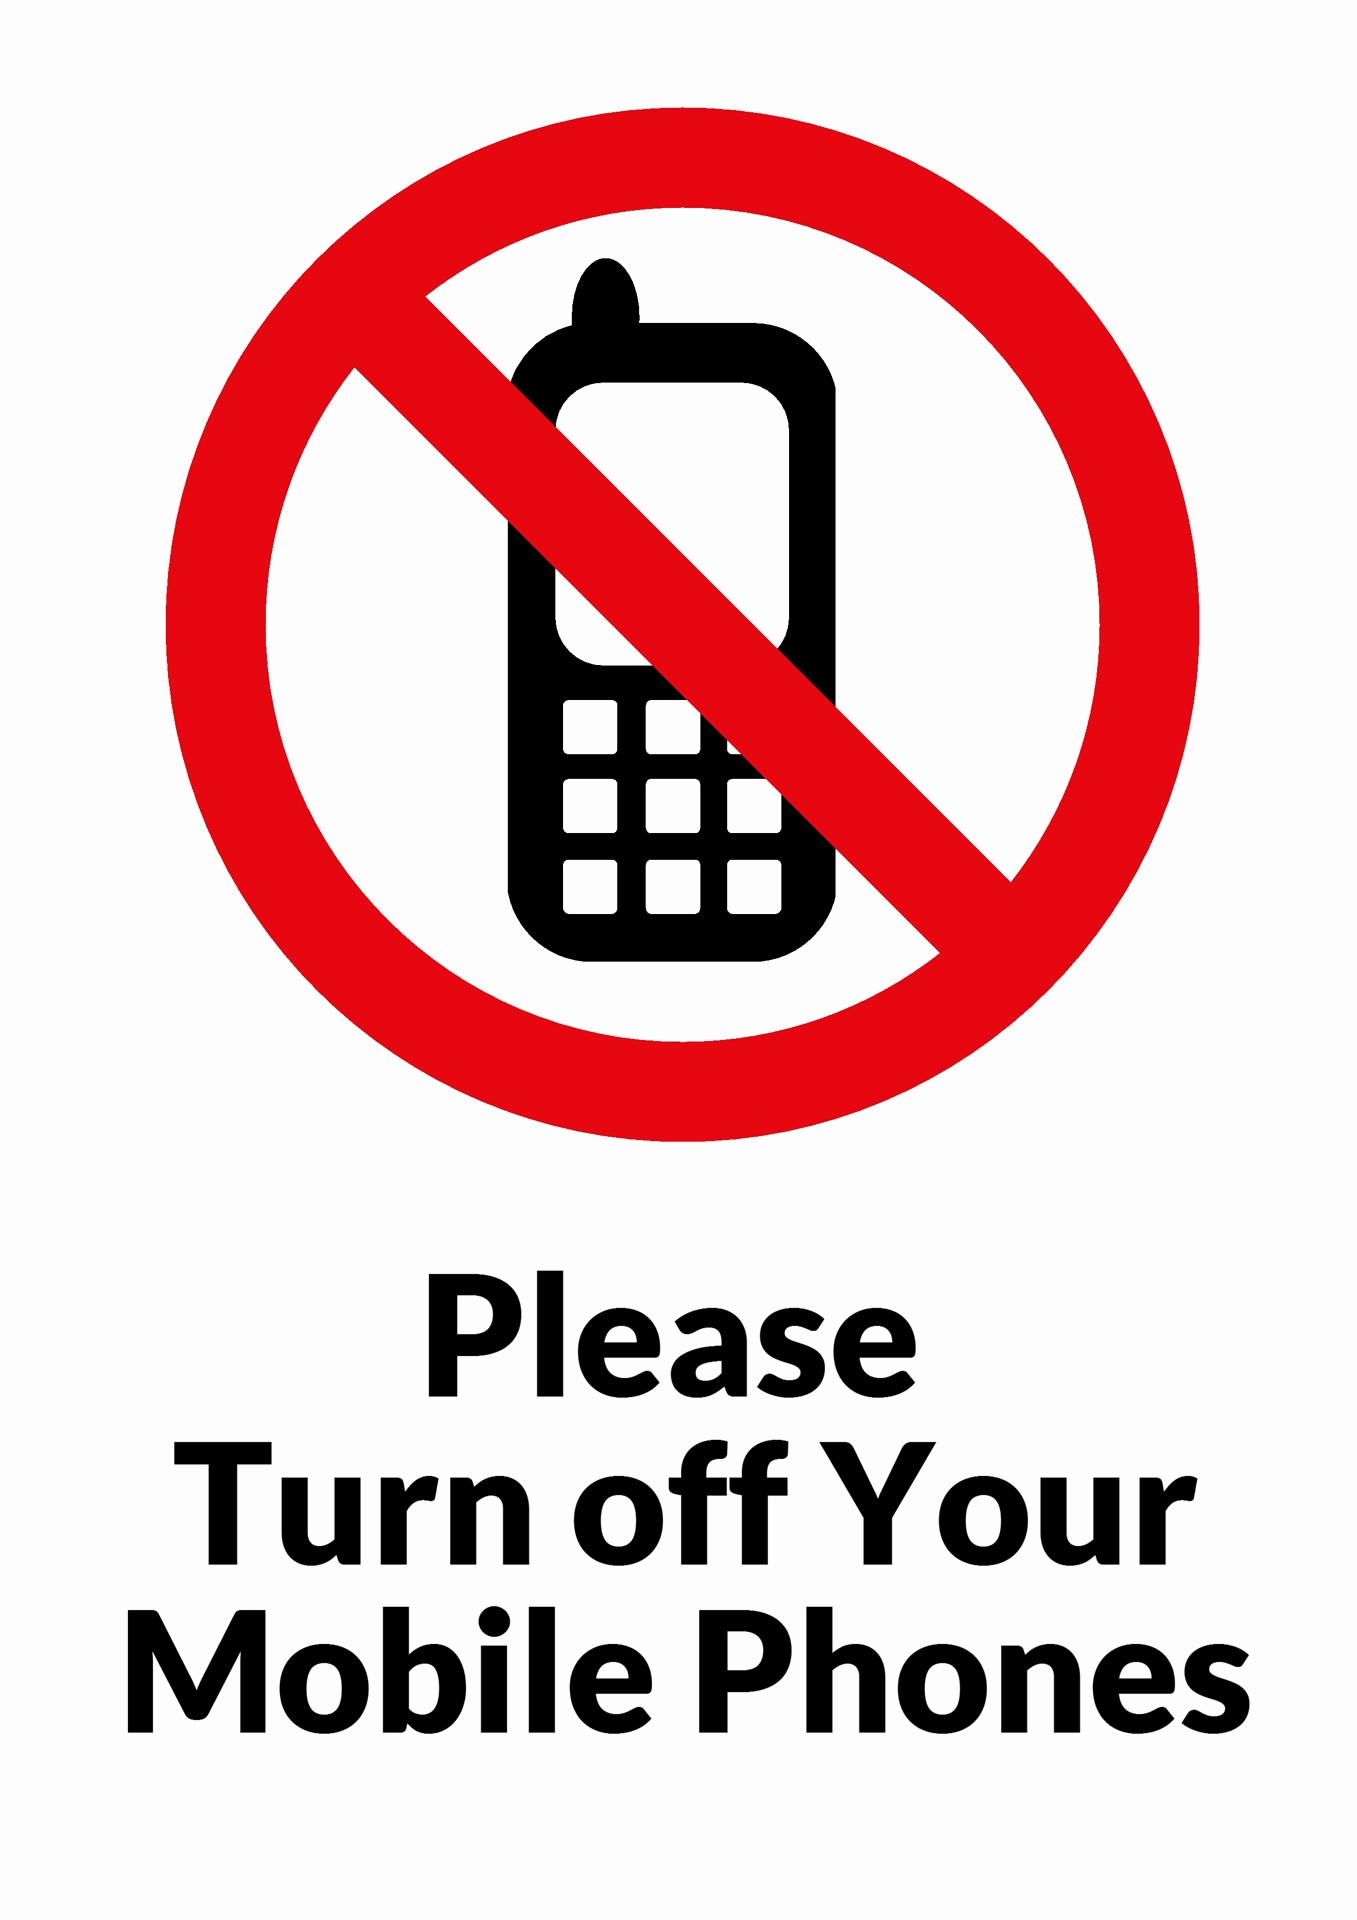 Turn Off Cell Phone Sign Unique Please Turn F Your Mobile Phones Free Stock